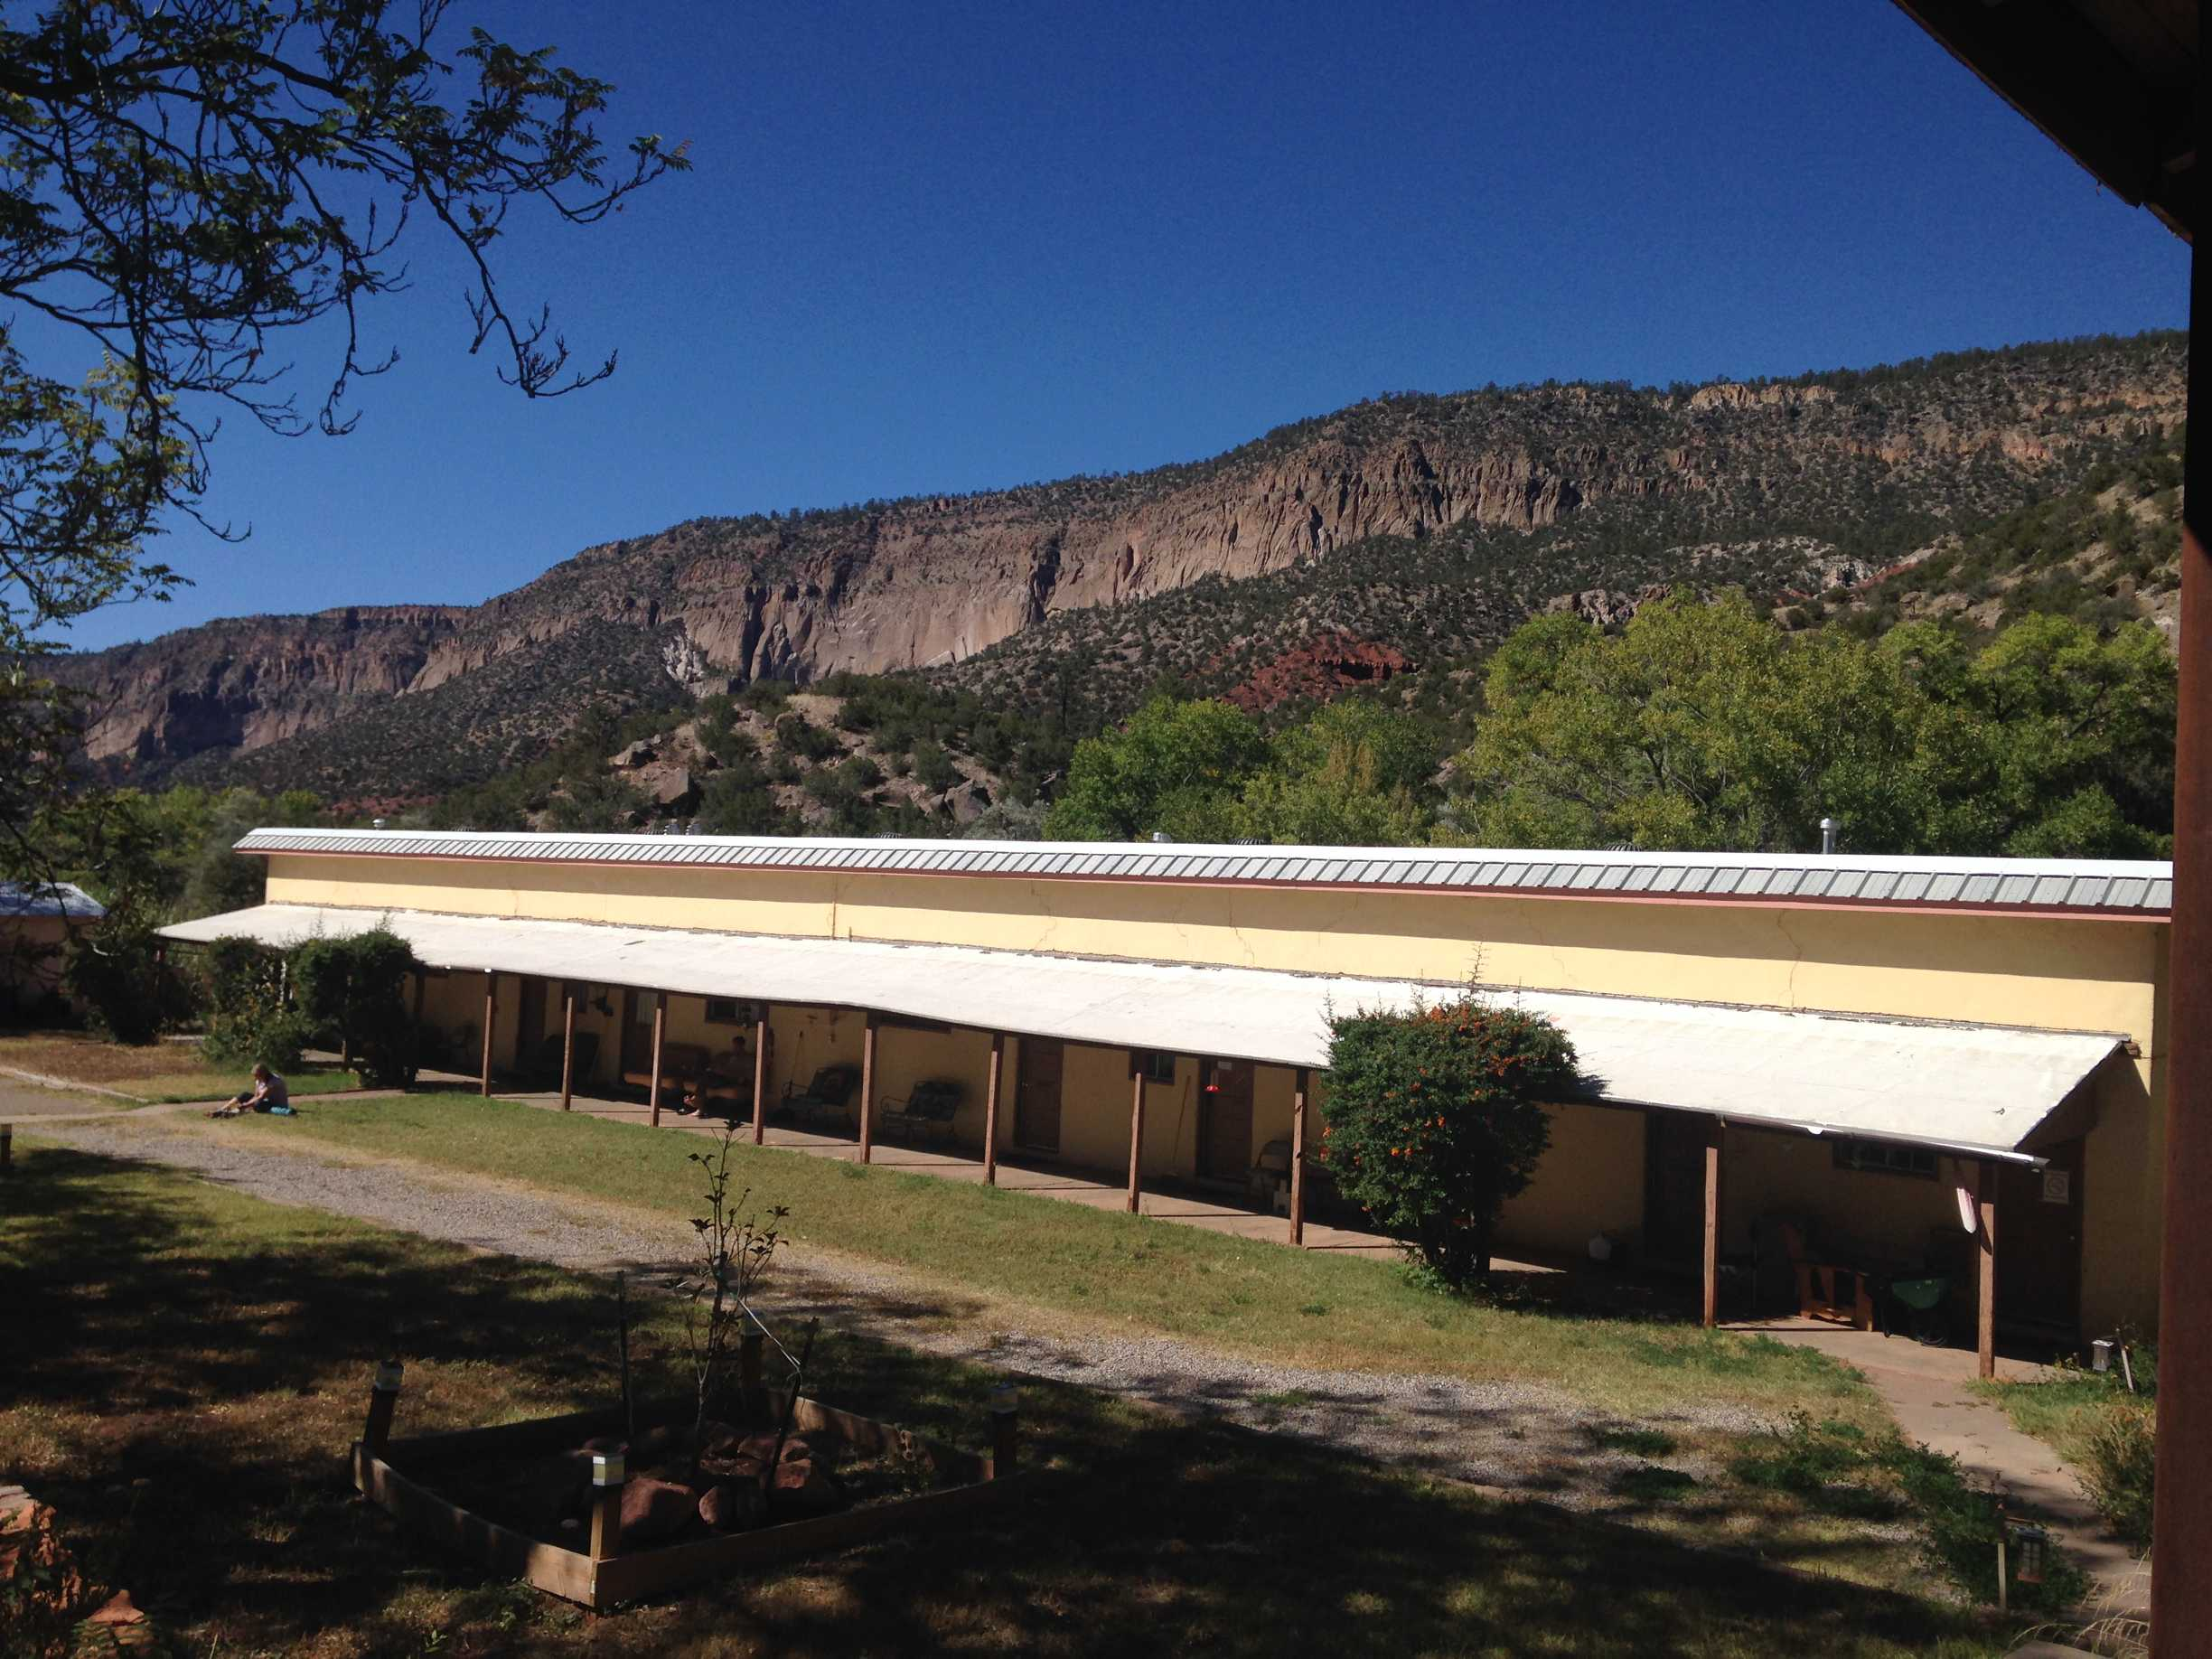 Dormitories at the Jemez National Forest